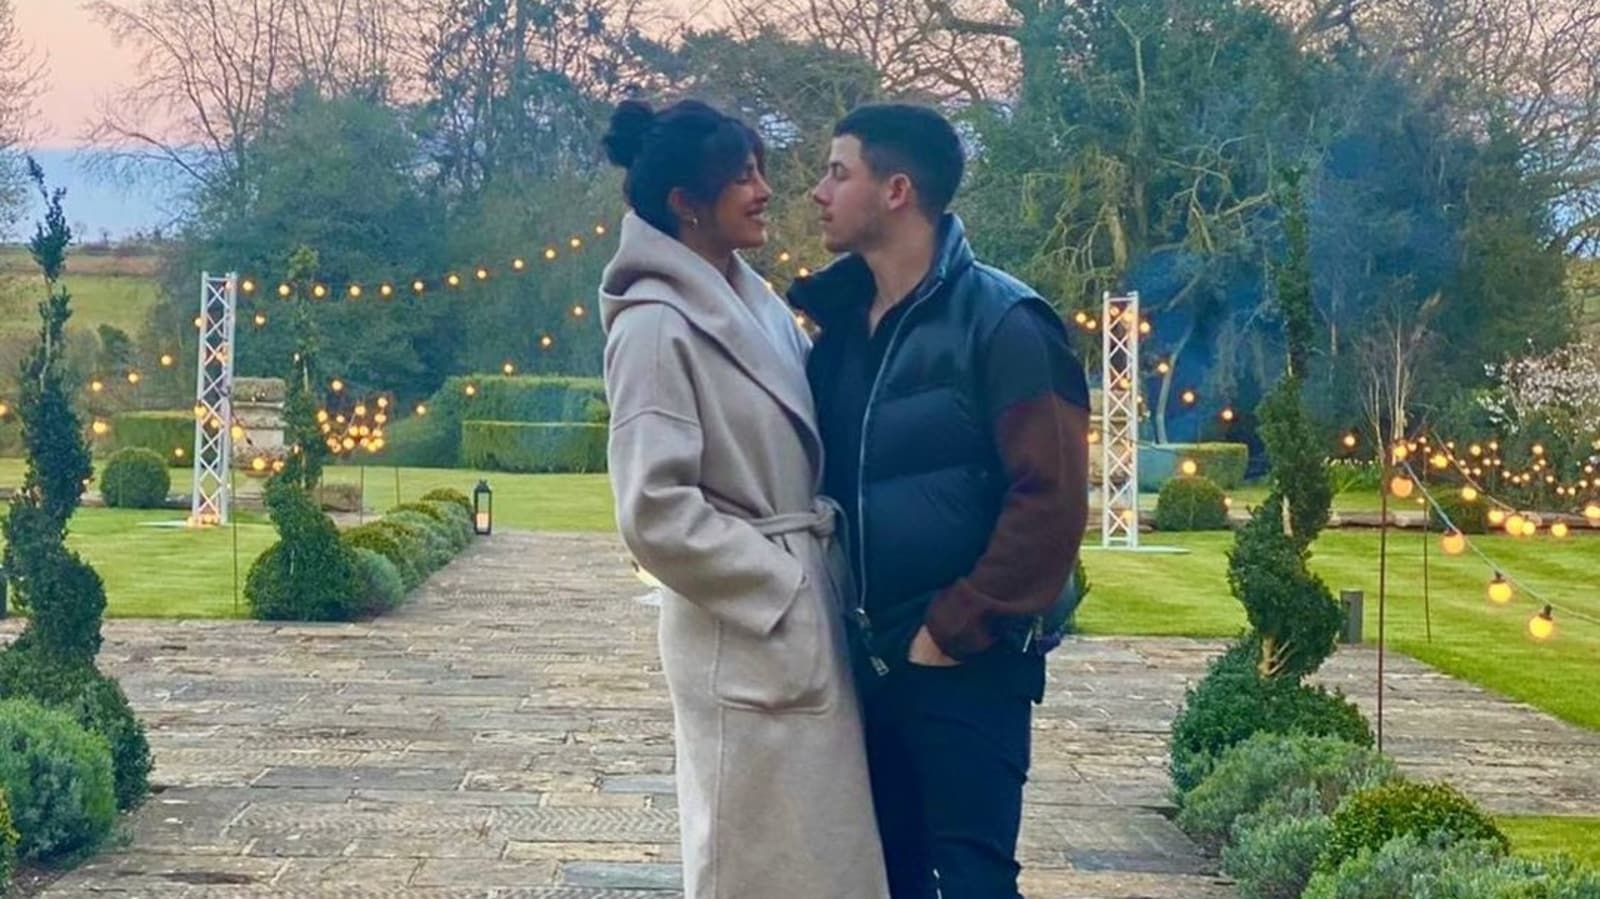 Priyanka Chopra shares a photo with Nick Jonas of the 'where time stands still', says she misses